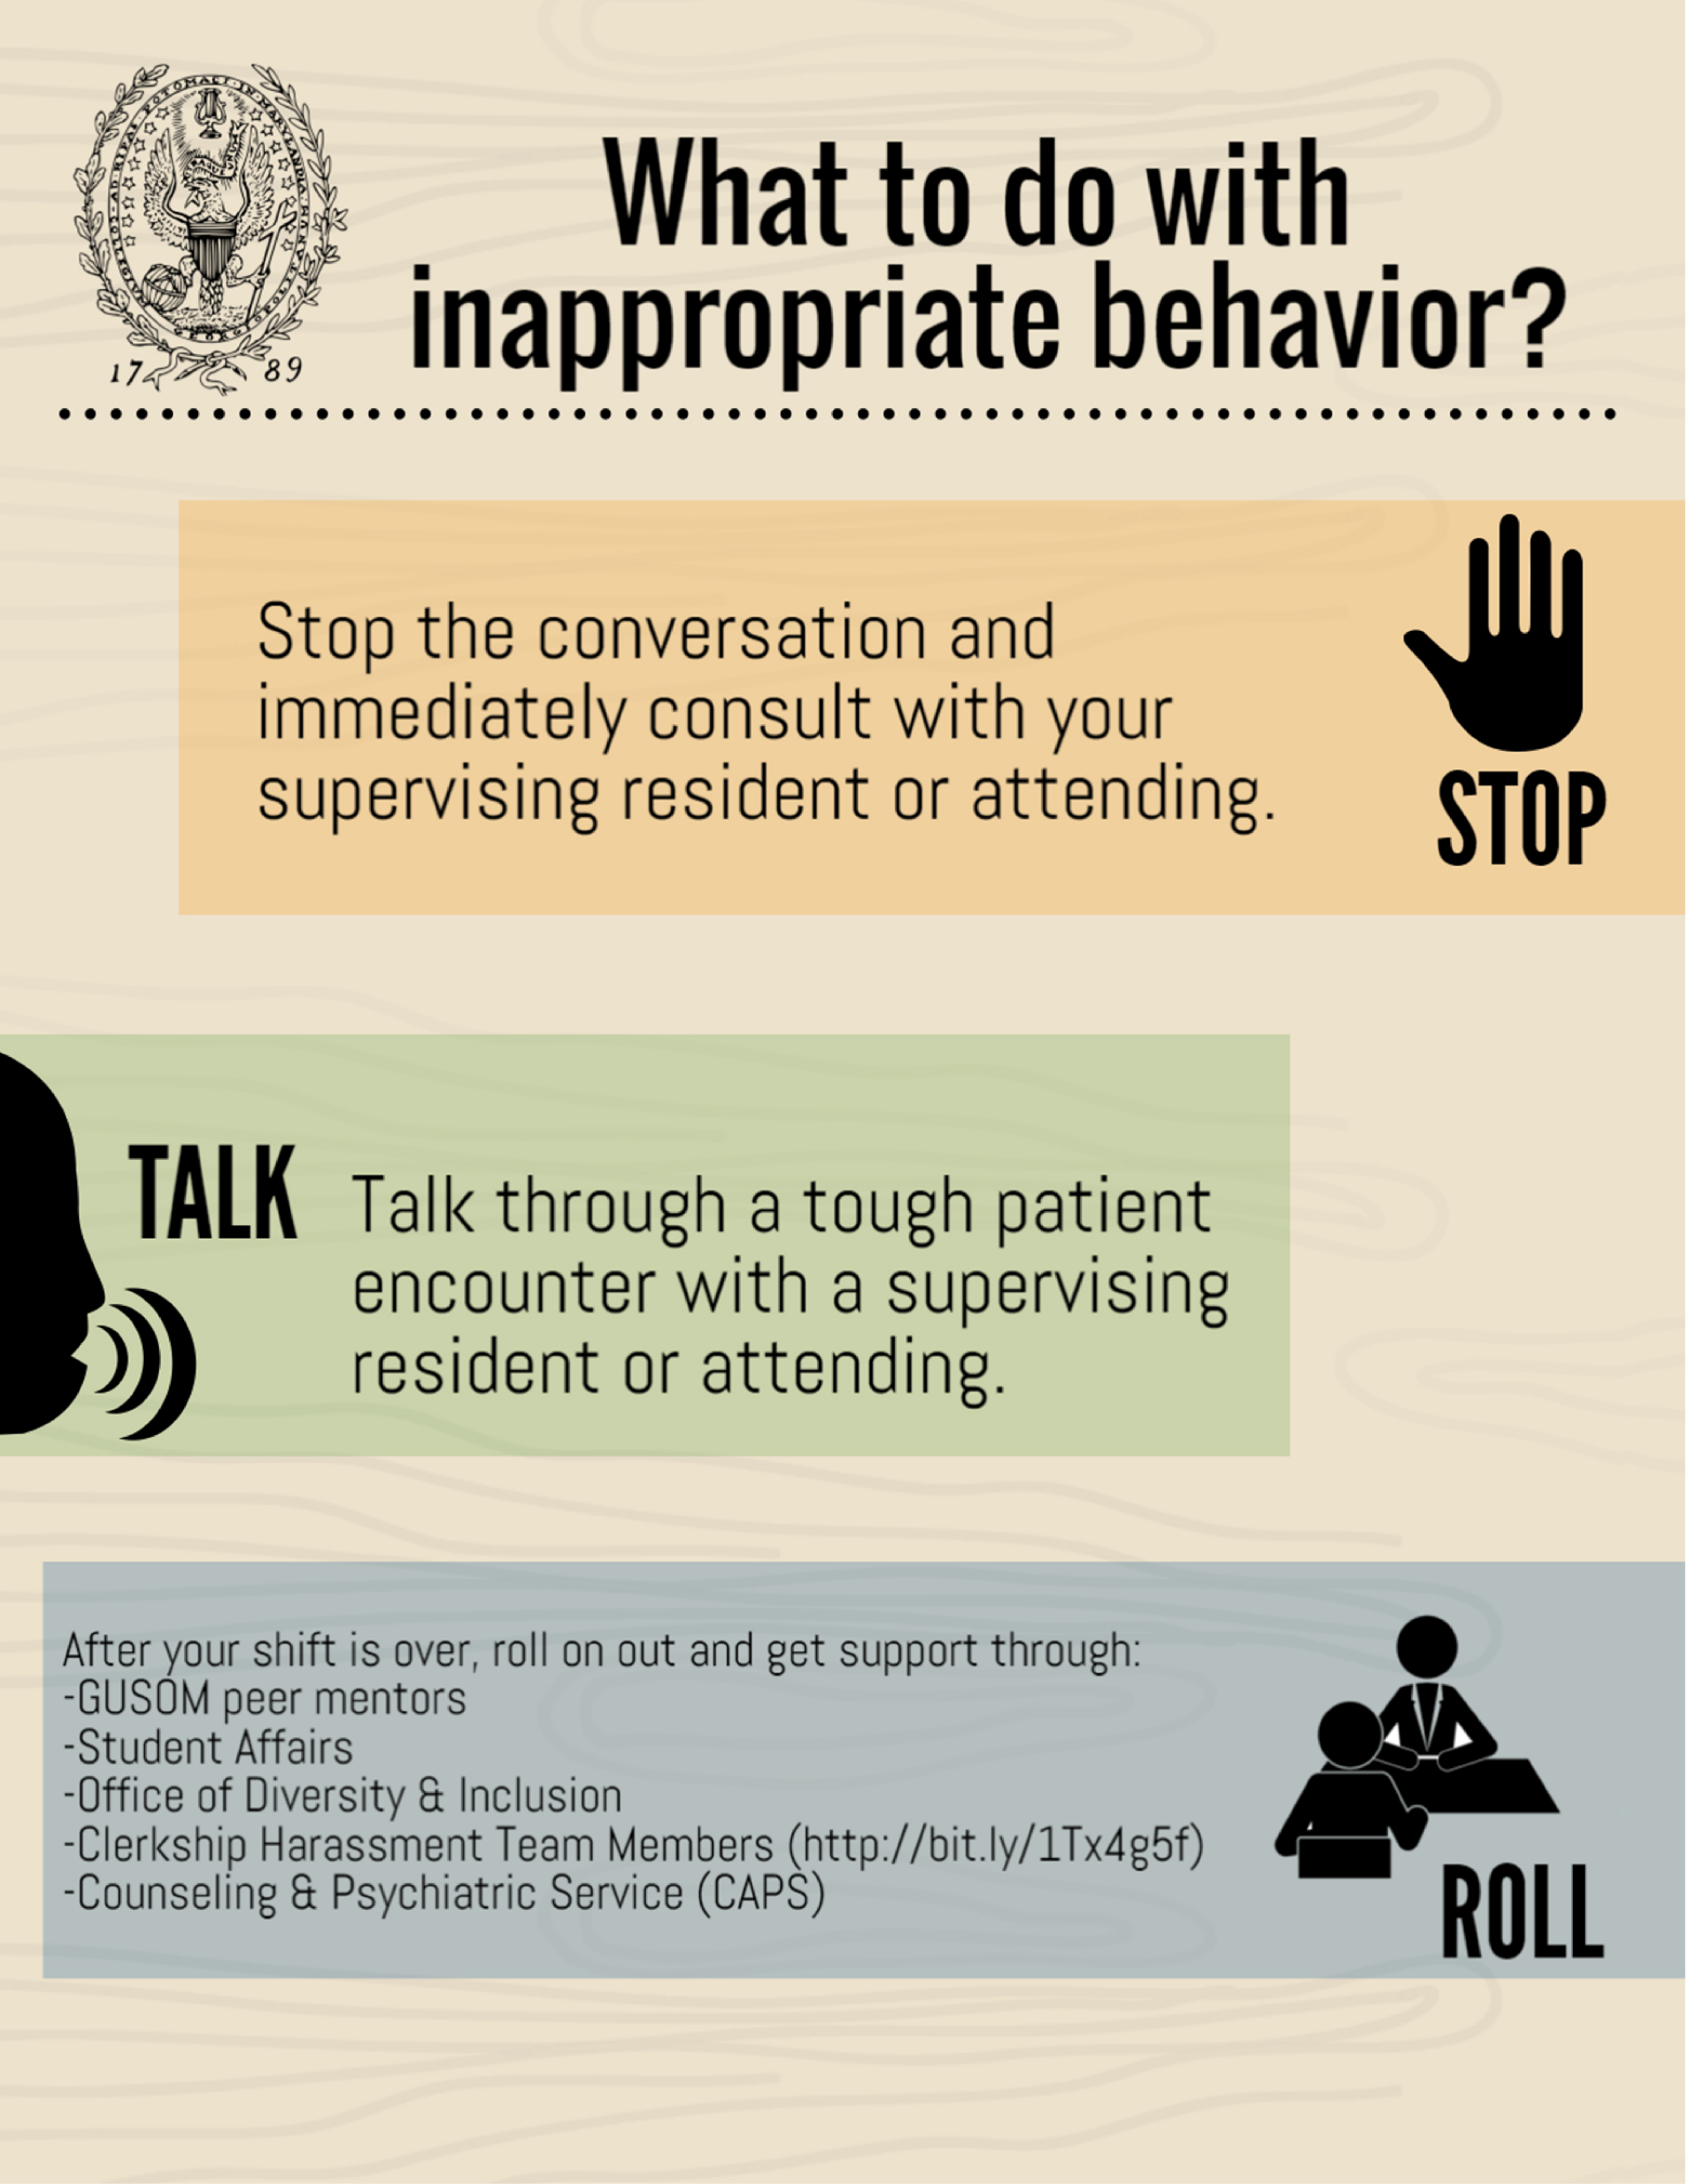 What to do with inappropriate behavior? Stop, Talk, Roll. Infographic transcription below.